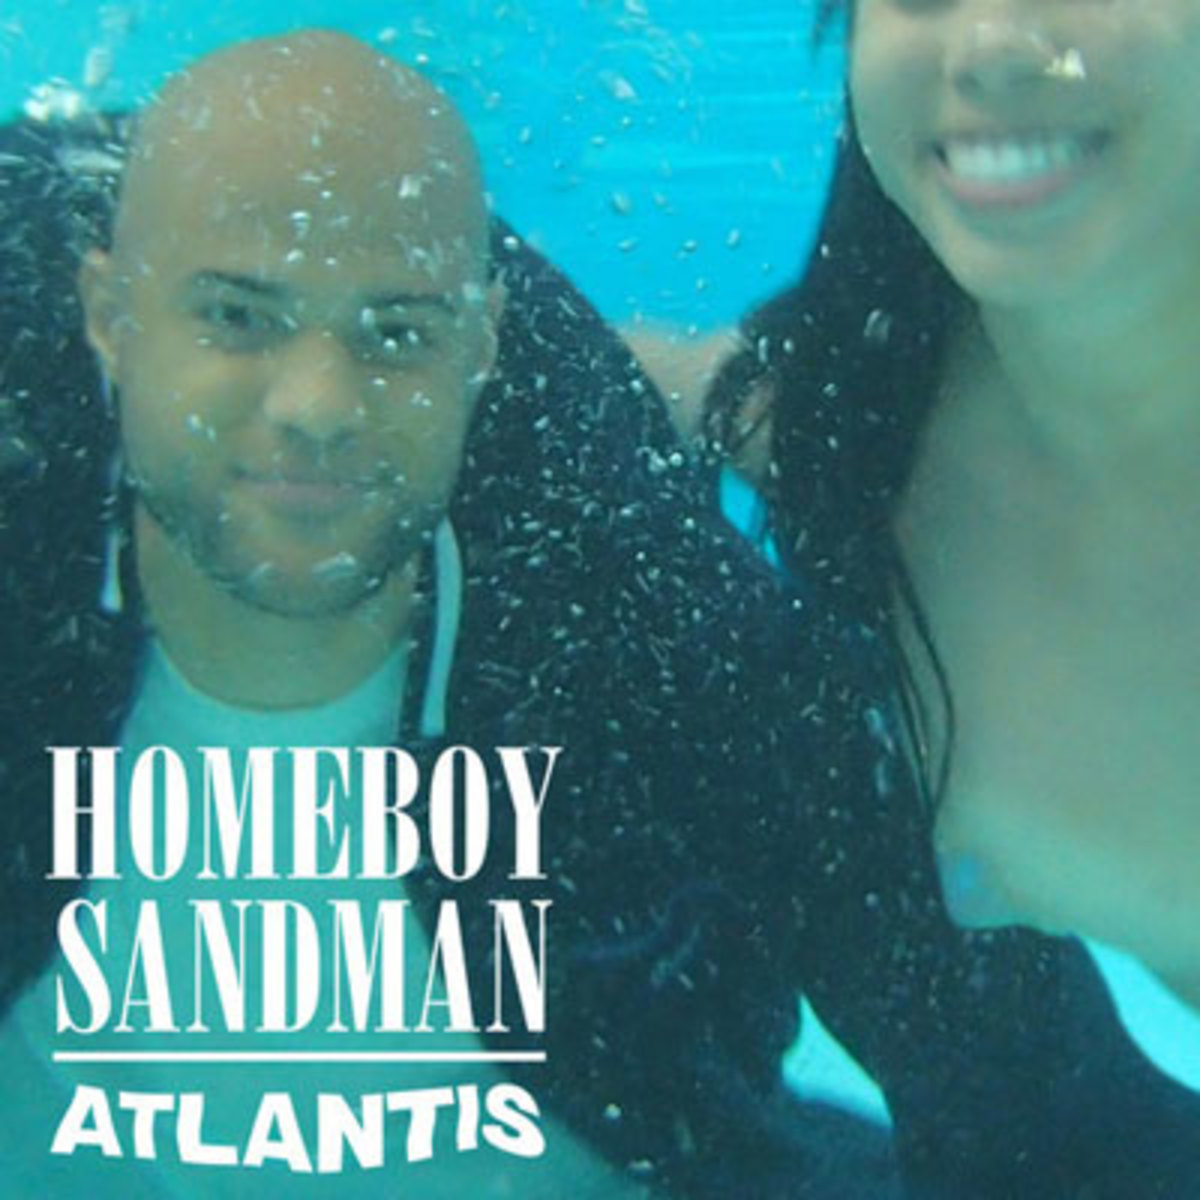 homeboysandman-atlantis.jpg